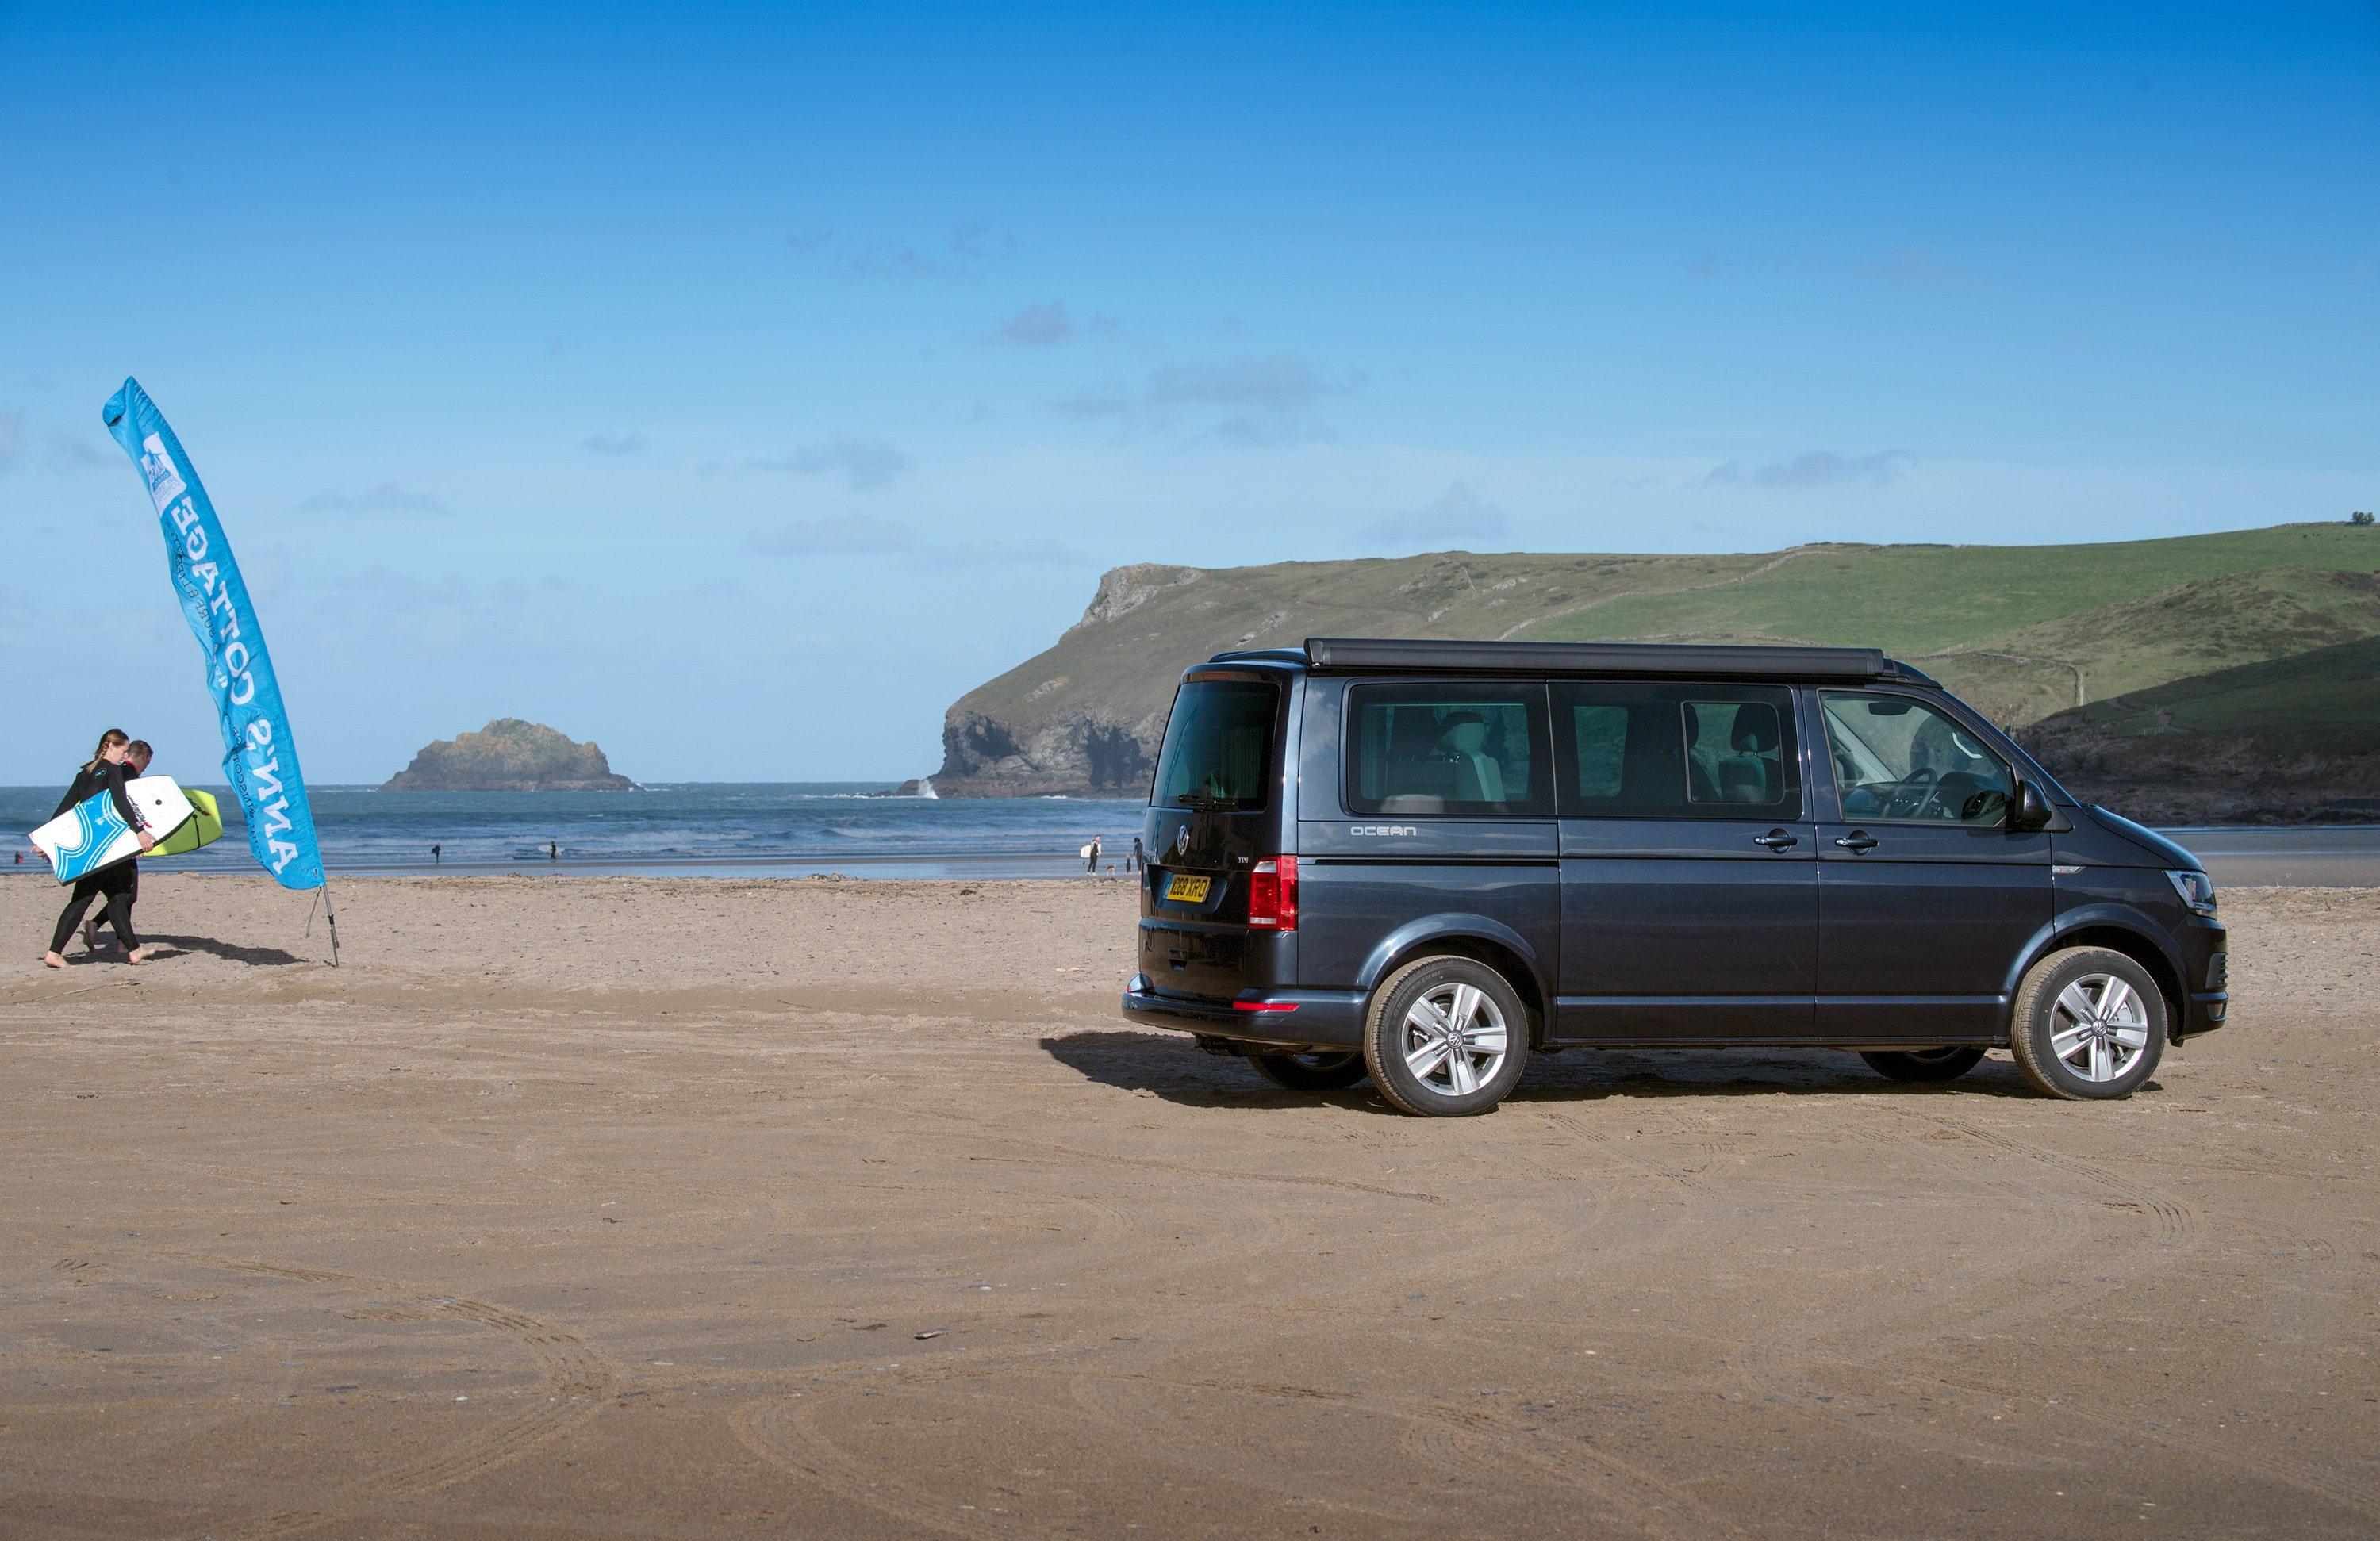 VW California Ocean campervan on a beach